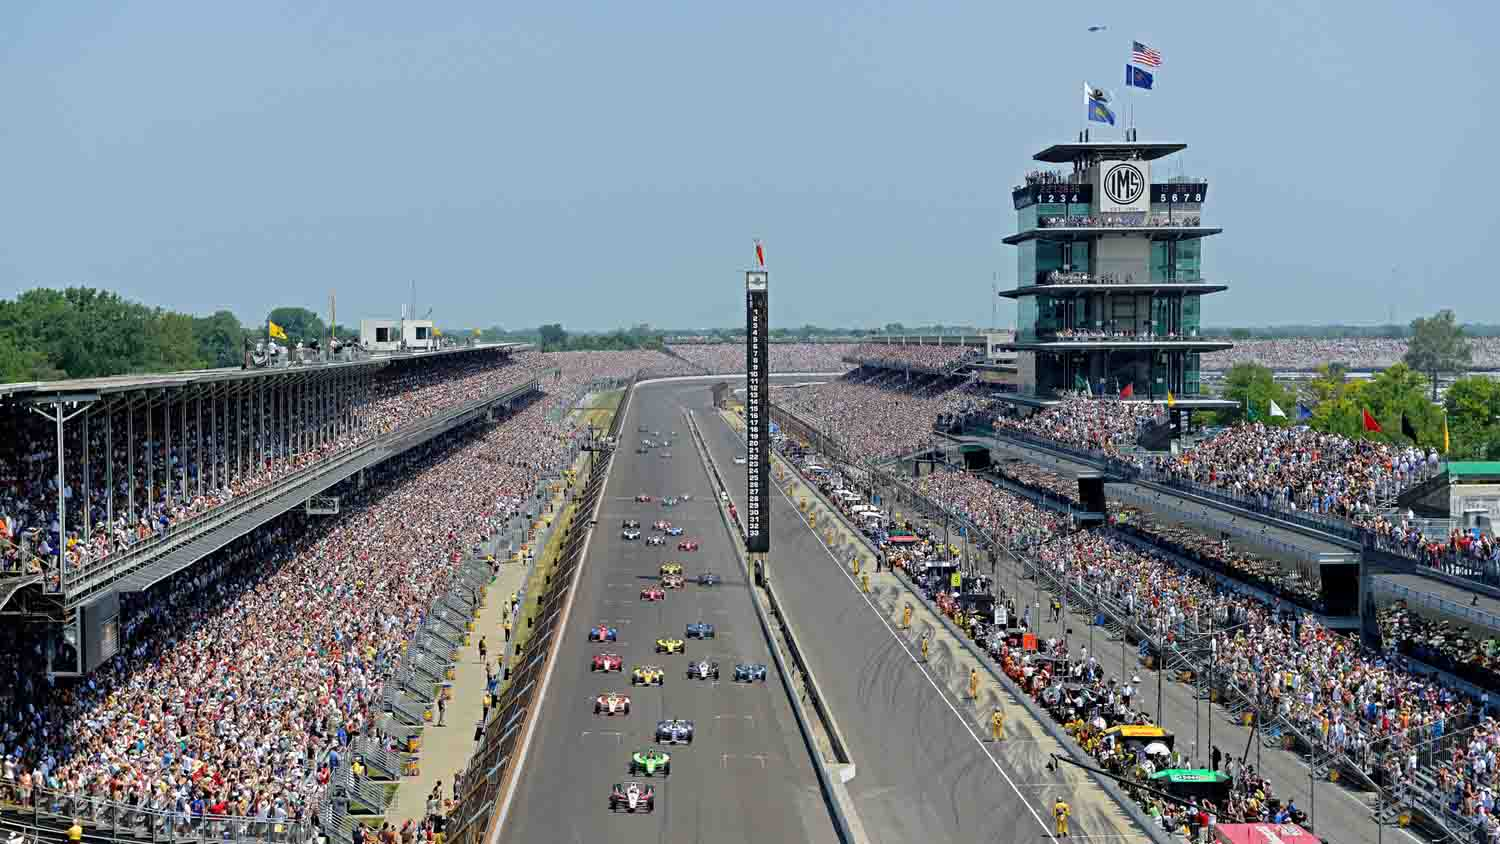 Indy Sports Tour - The Racing & Sports Capital of the World